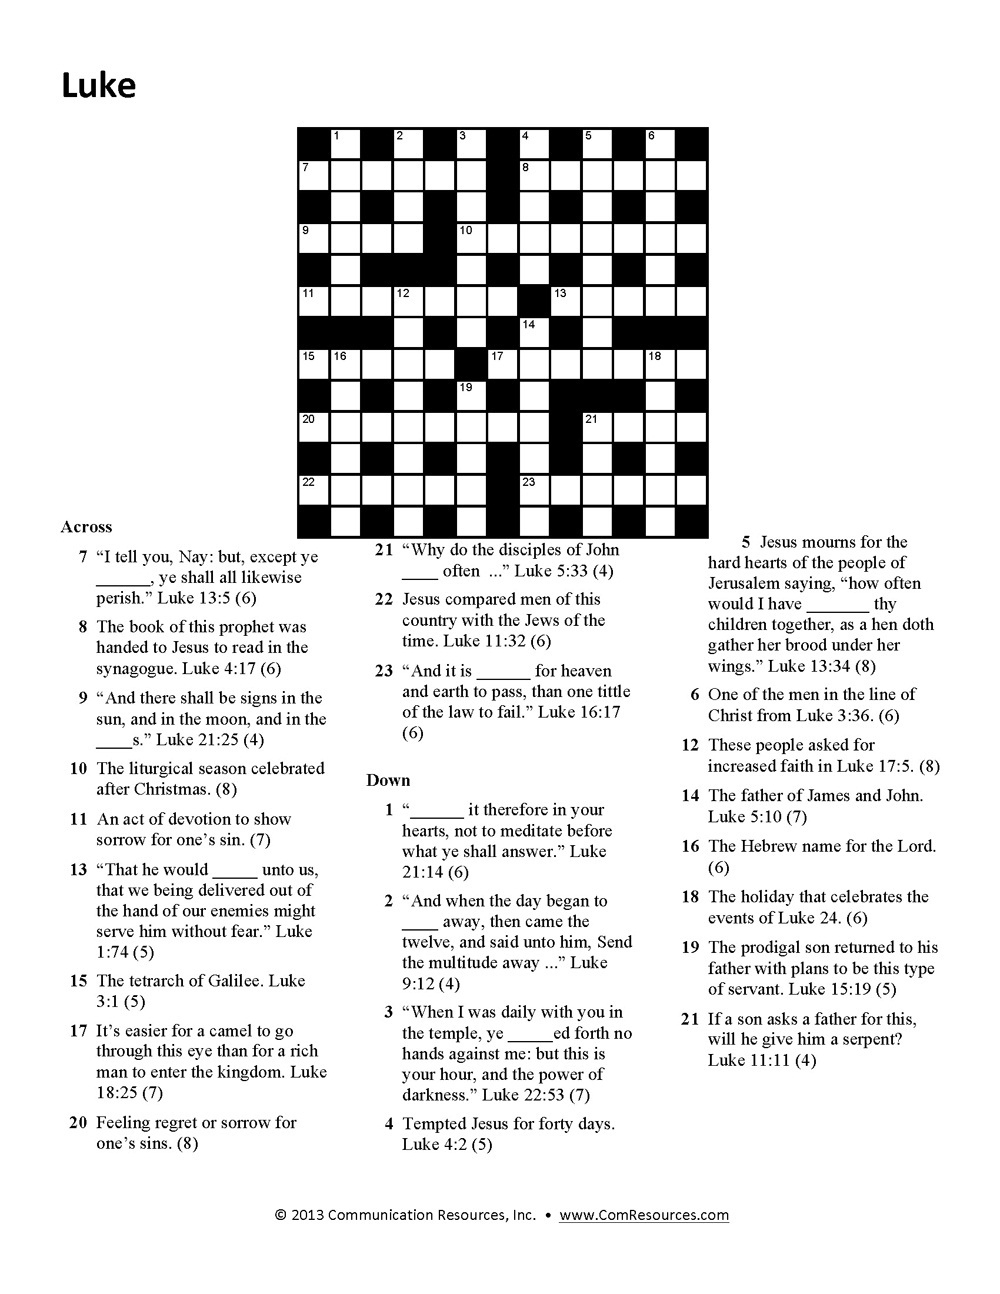 15 Fun Bible Crossword Puzzles | Kittybabylove - Bible Crossword Puzzles Printable